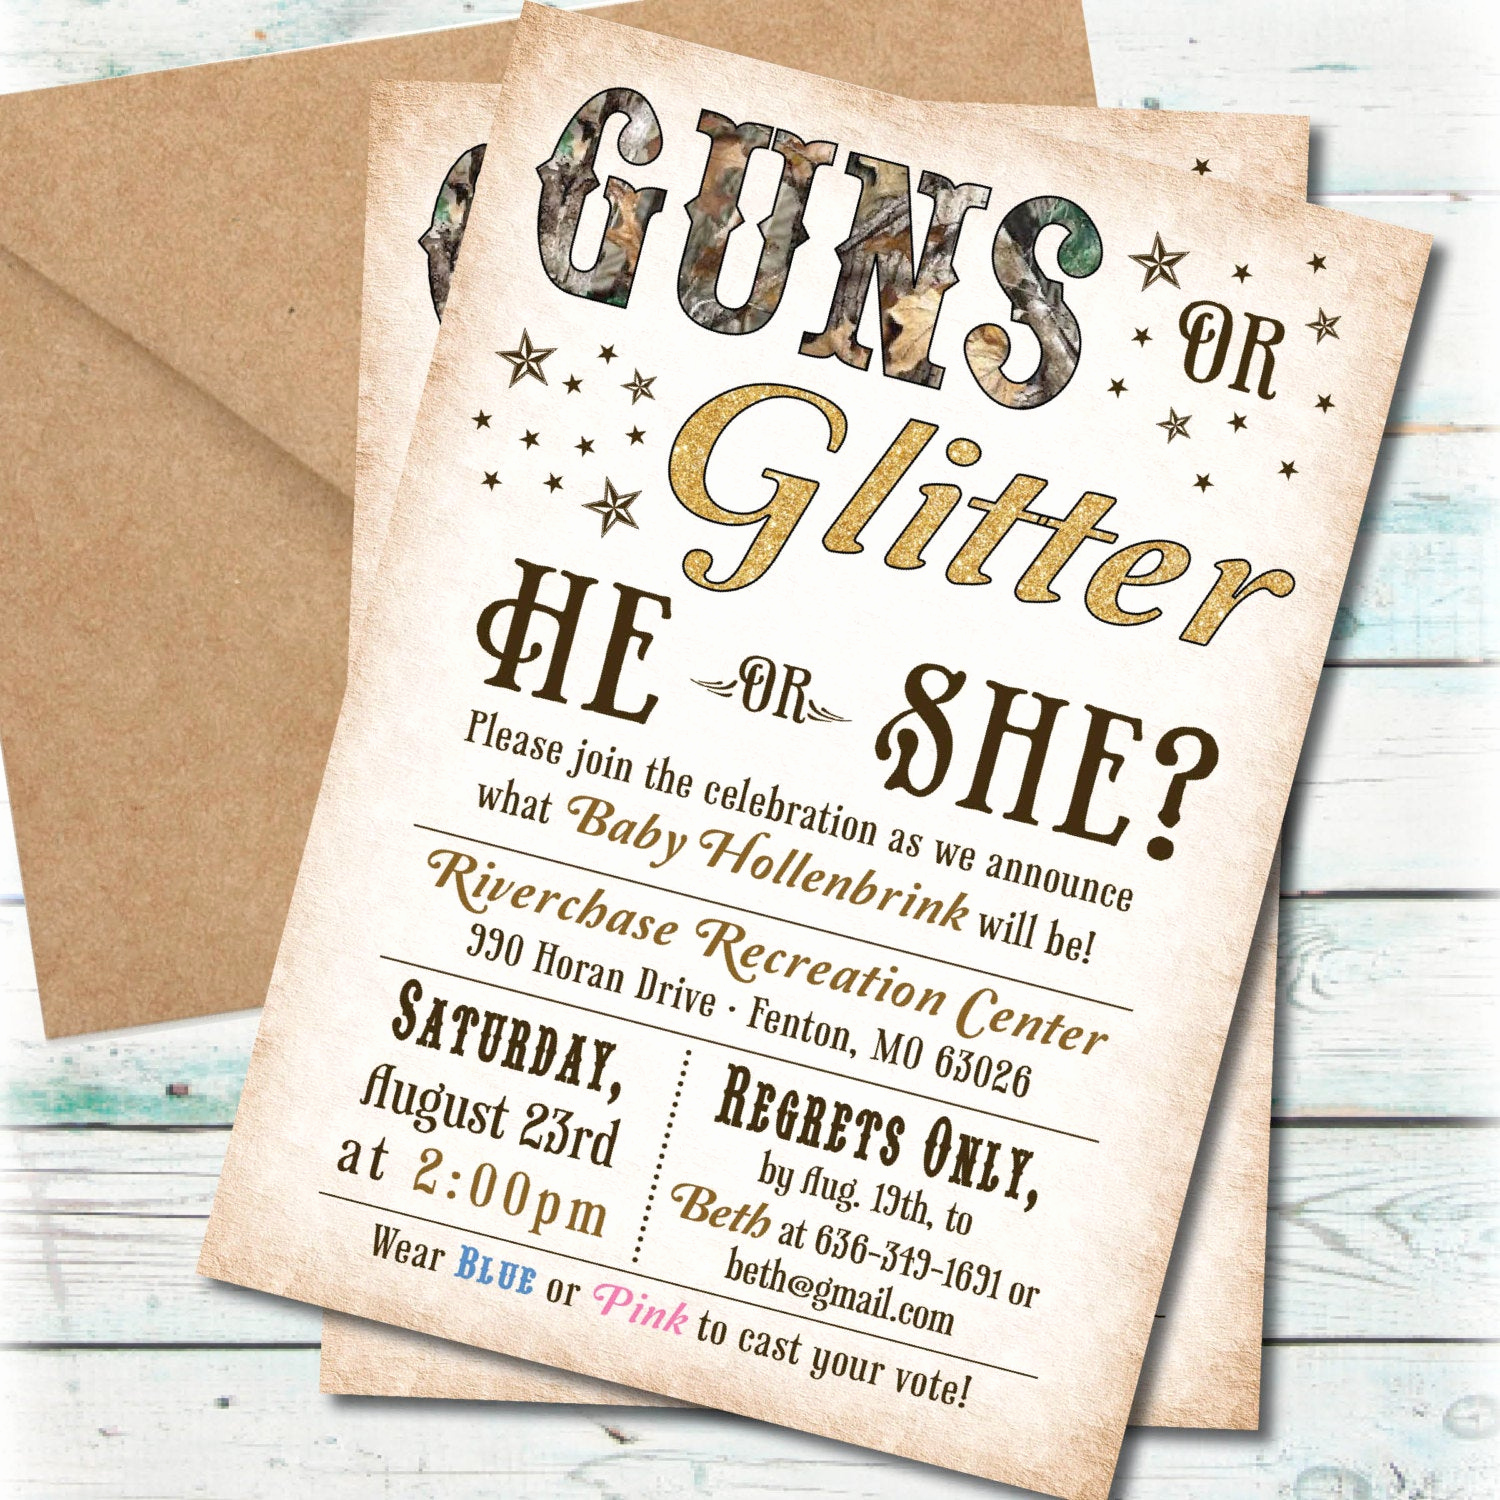 Reveal Party Invitation Ideas Inspirational Printable Guns or Glitter Gender Reveal Party Invitation